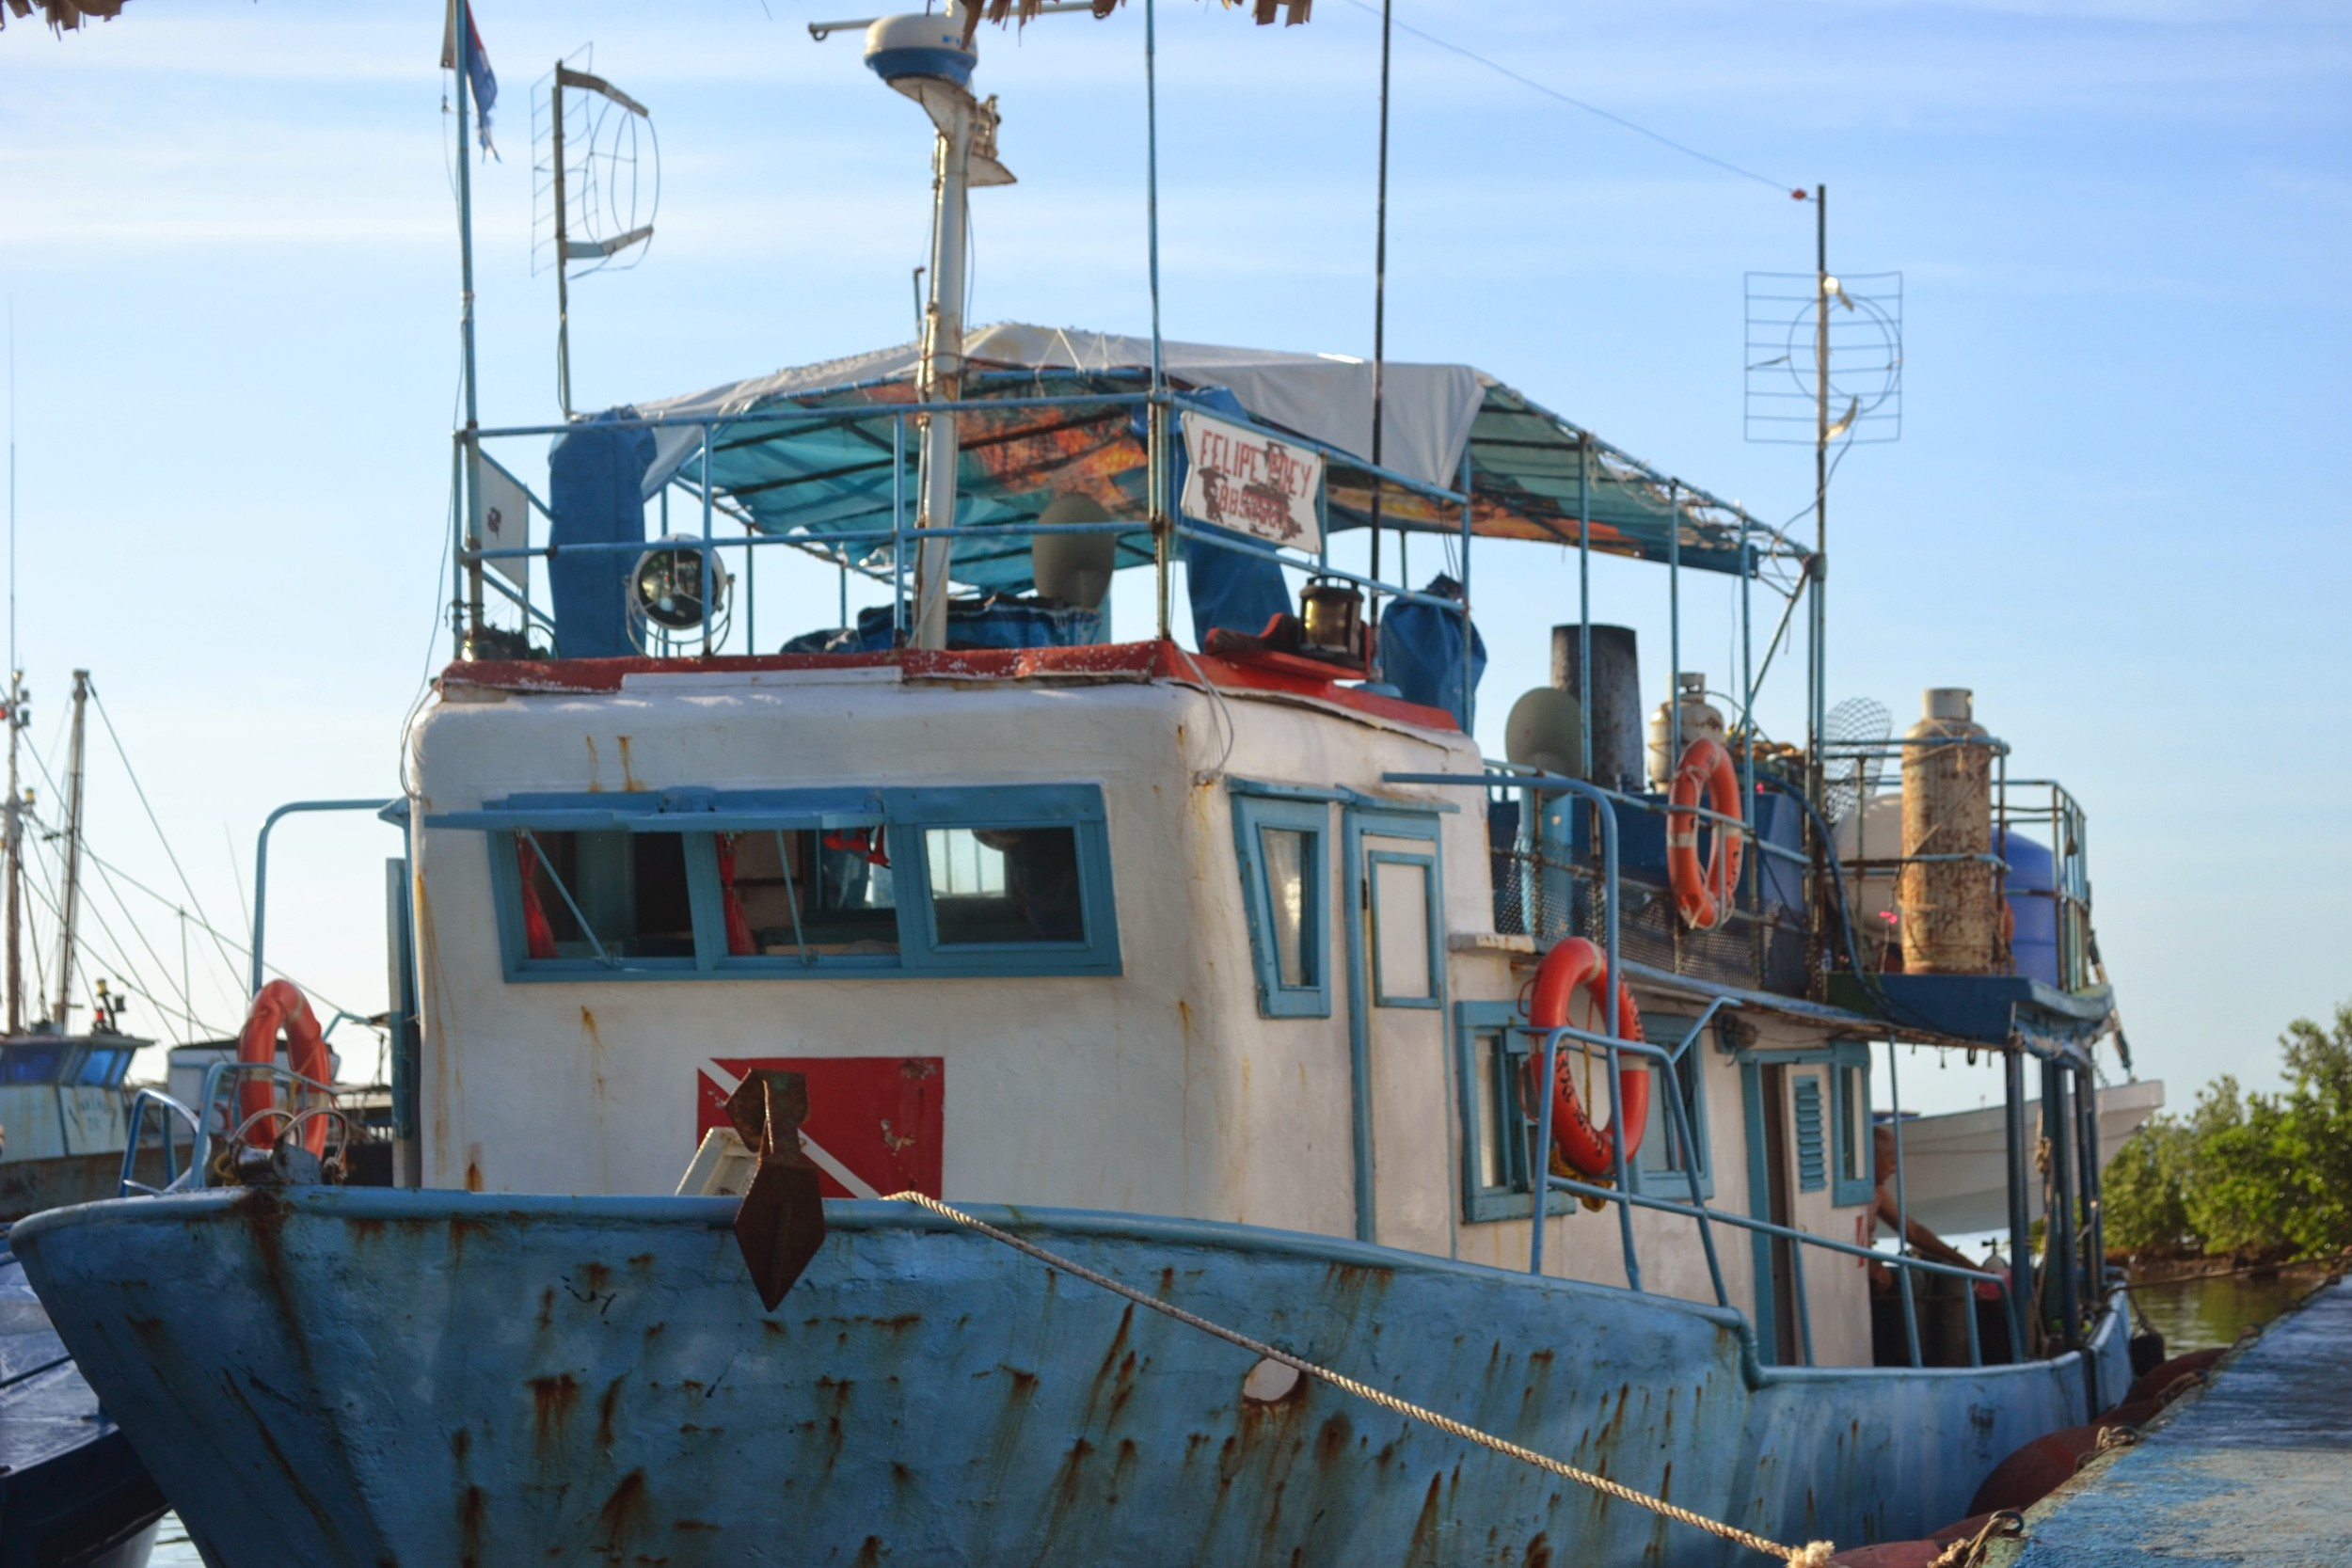 R/V Felipe Poey, a Cuban converted 1950s fishing trawler and my home for a week in October 2013.